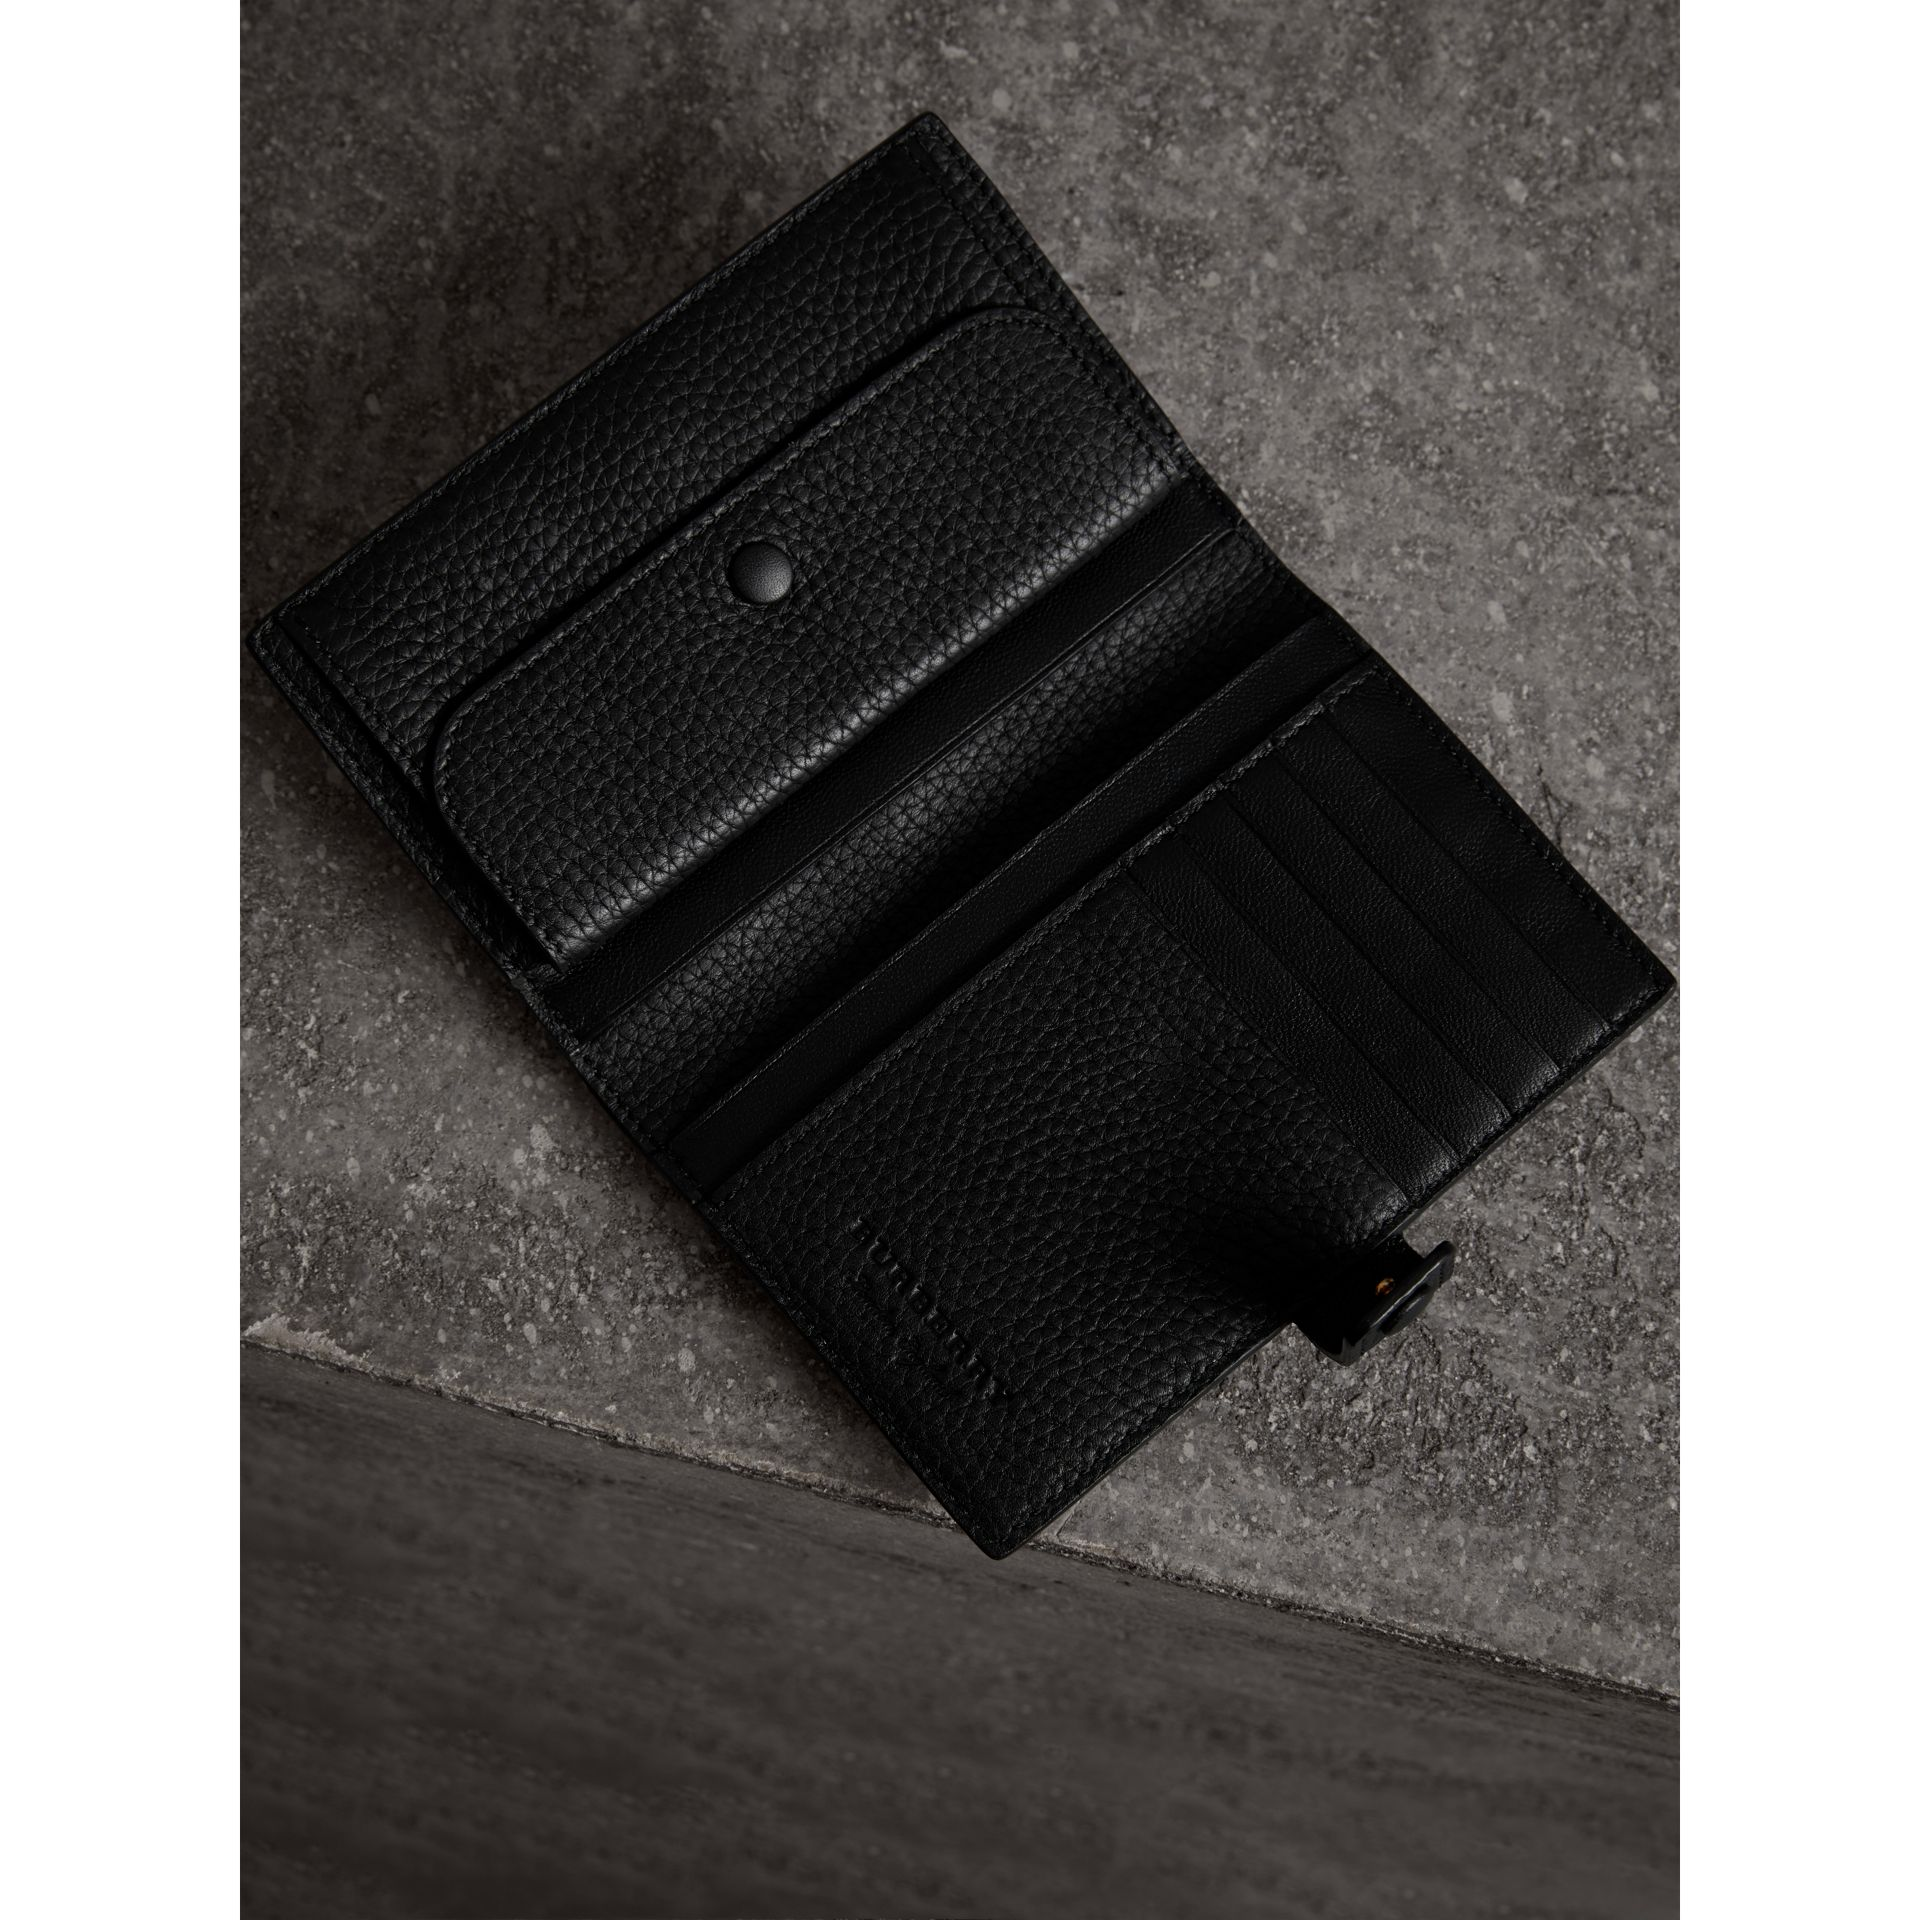 Embossed Grainy Leather Folding Wallet in Black - Women | Burberry - gallery image 3